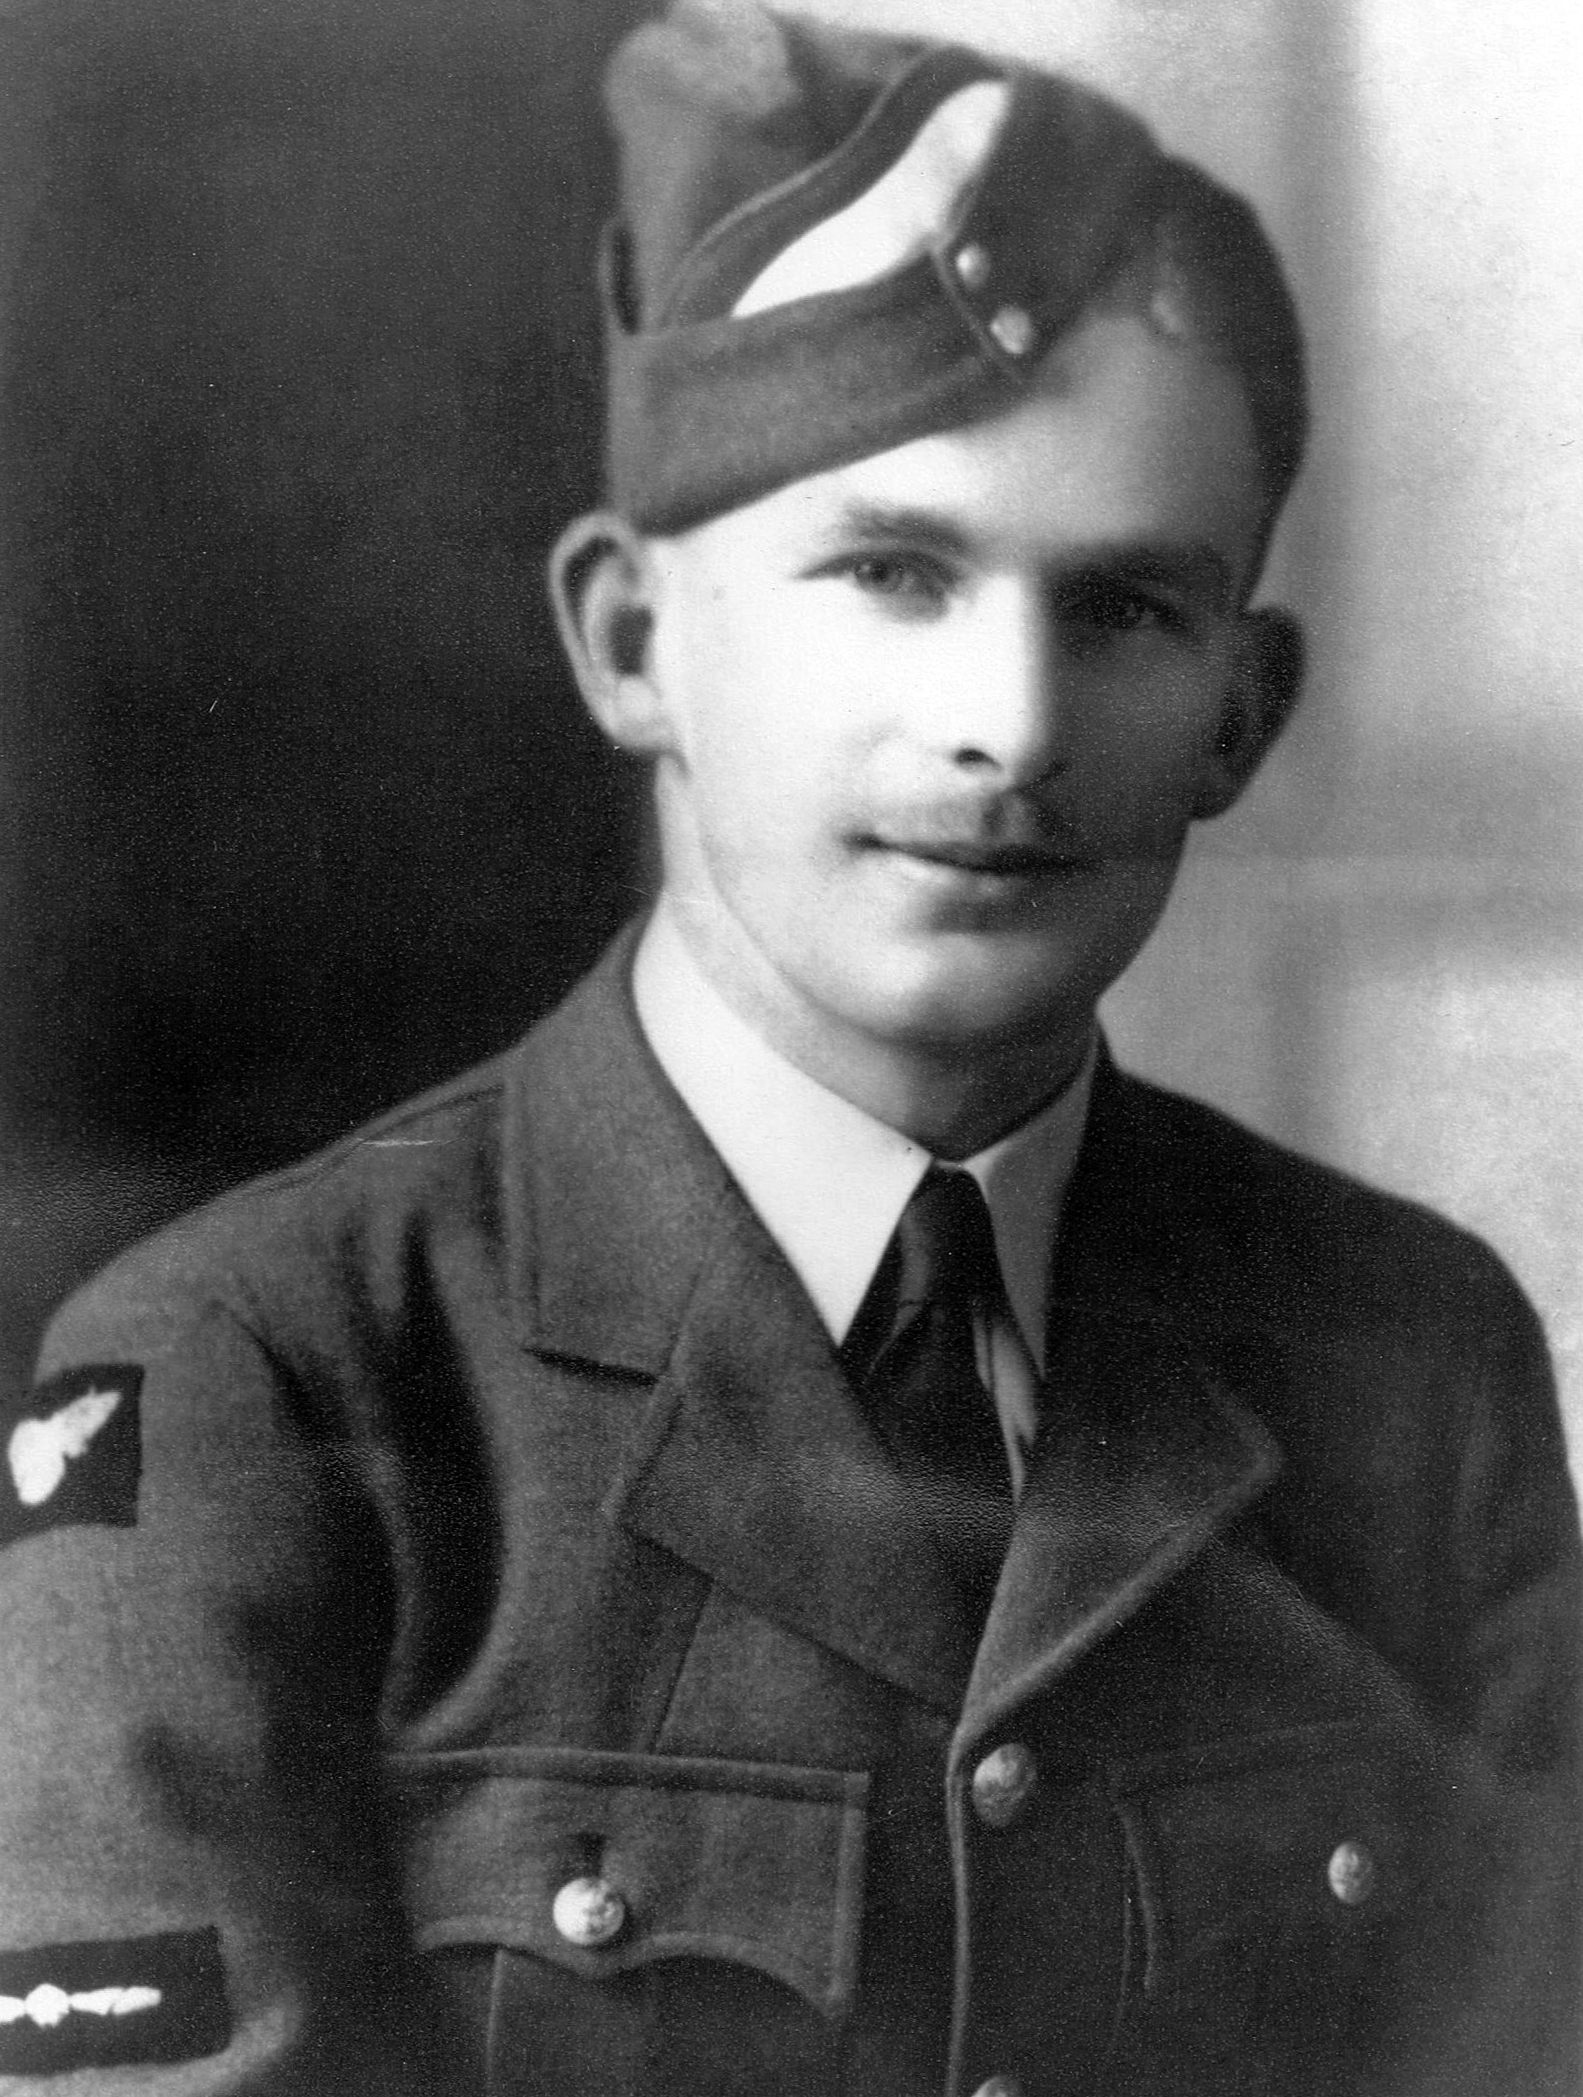 Sgt Ronald Alexander Smith RNZAF NZ415378, Rear Gunner with the McCaskill crew. Died on the 15th April 1943, on the Stuttgart Op, age 21. - ron-smith-nz-cropped-and-cont